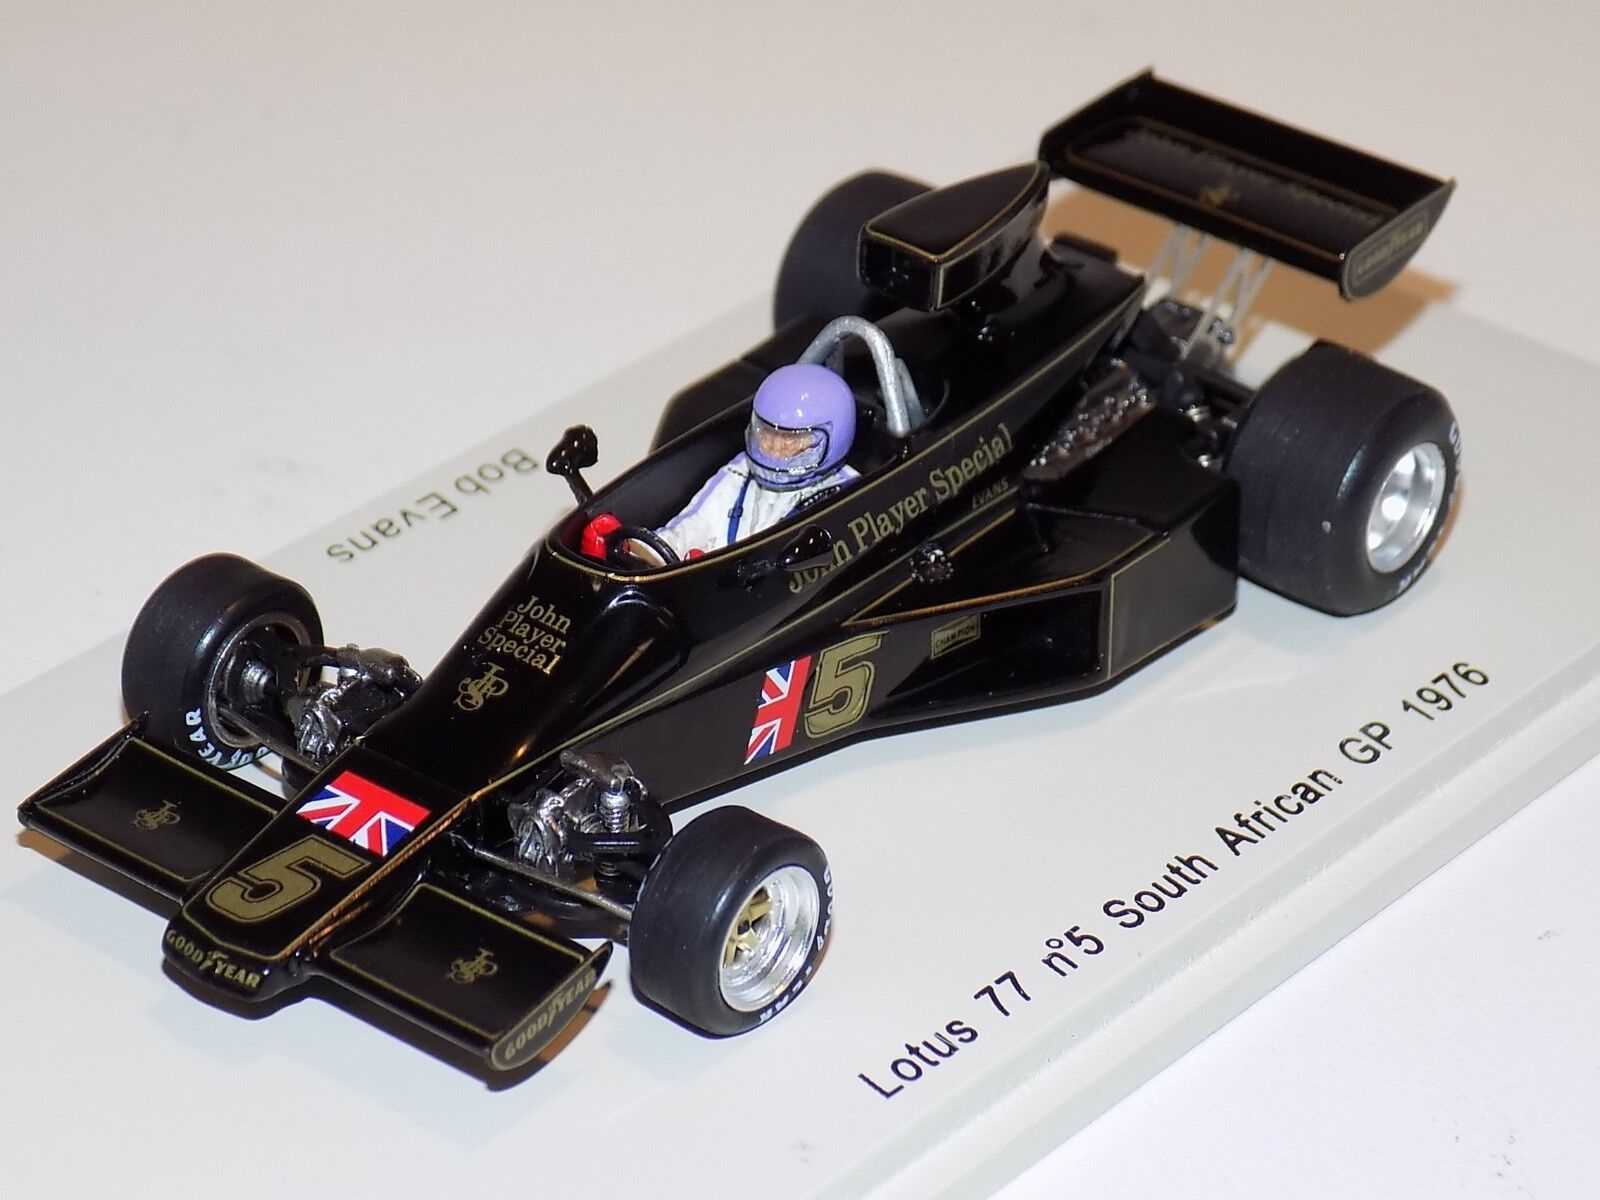 1/43 Spark Lotus 77 car #5 1976 South African  GP B.Evans S2134 with JPS decals